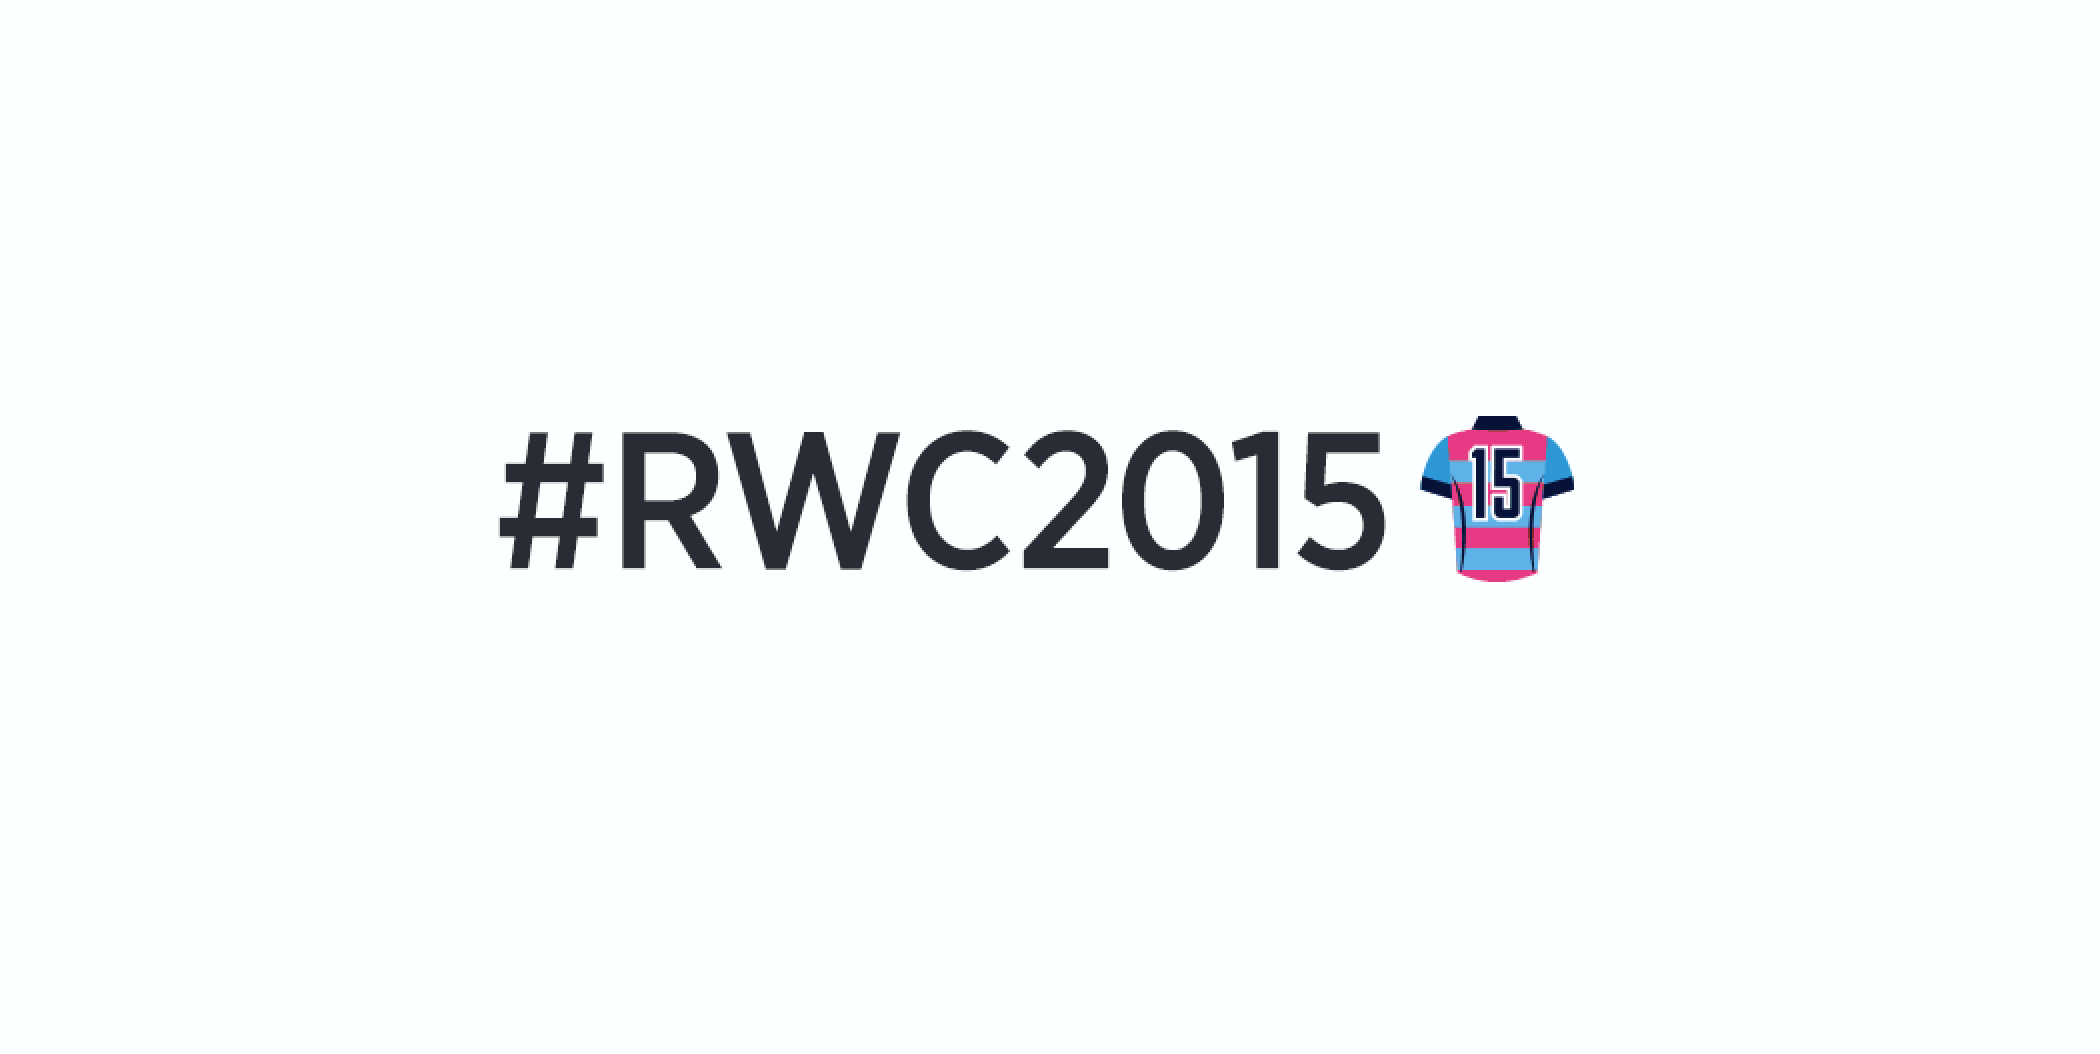 Twitter Unleashes Special Hashtag Emoji For The 2015 Rugby World Cup 2015 Rugby World Cup Rugby World Cup World Cup